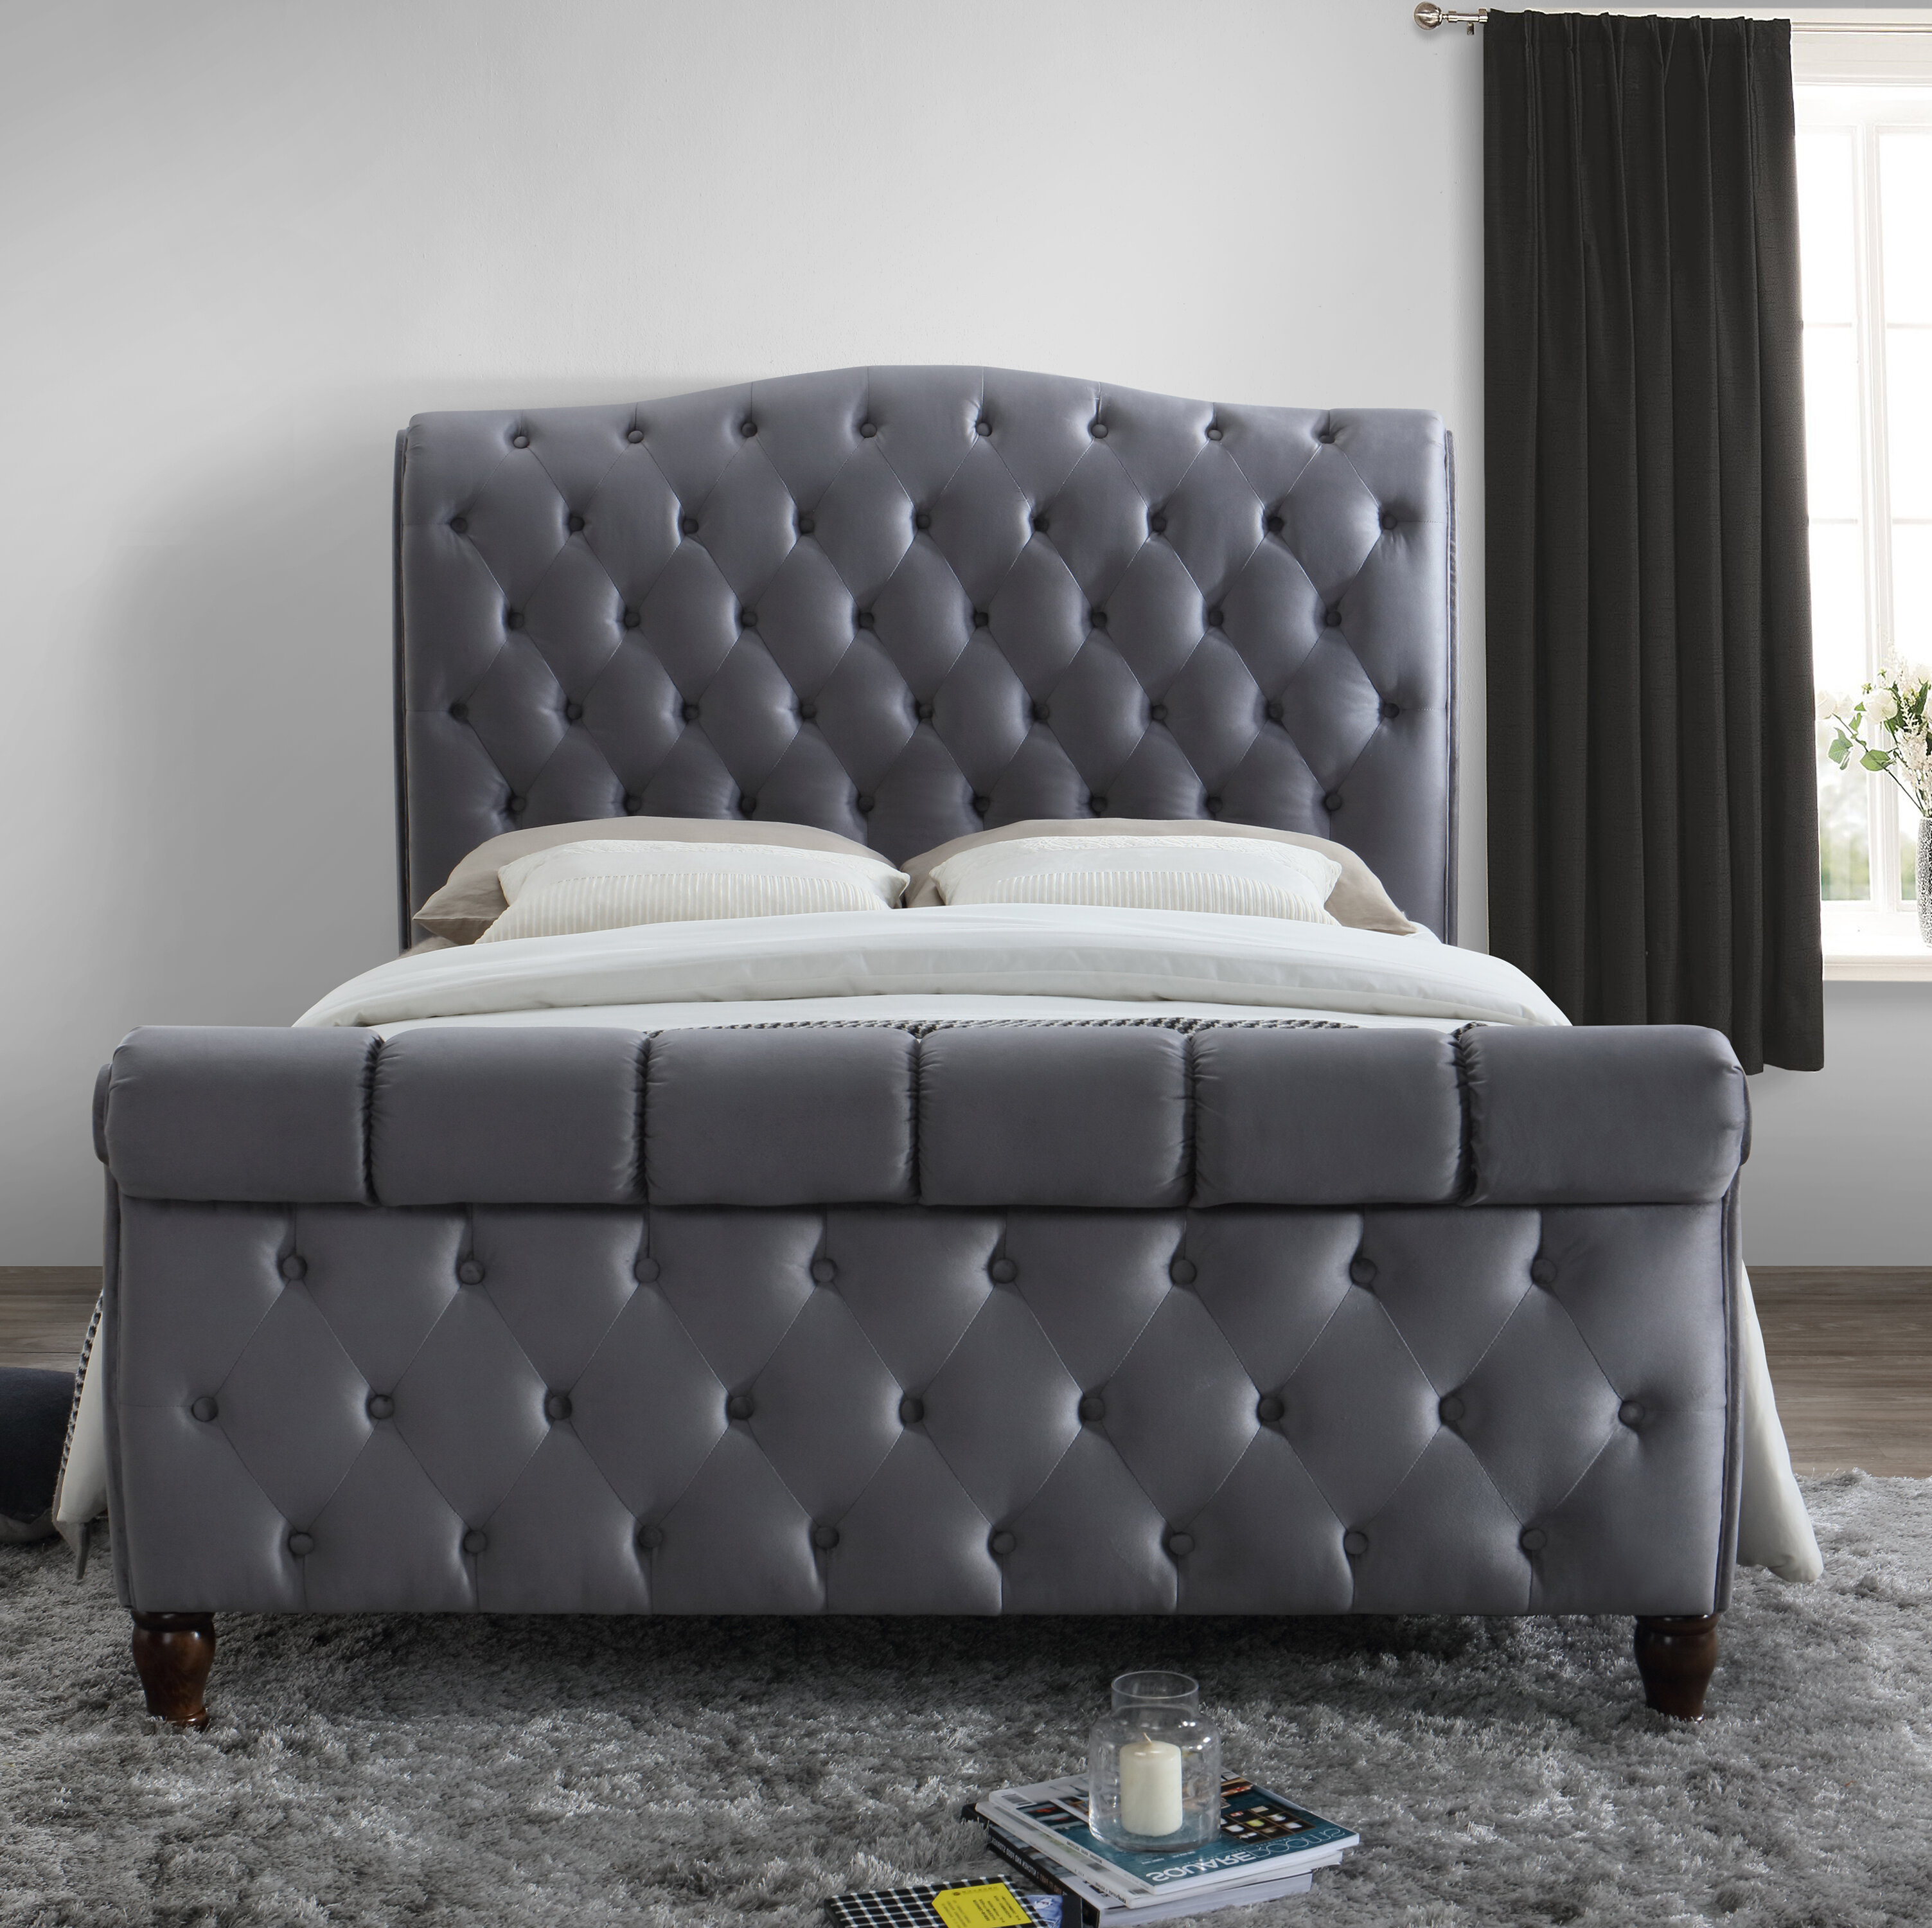 Upholstered Leather Sleigh Bed. Oxford Creek Queen Size Sleigh Bed ...